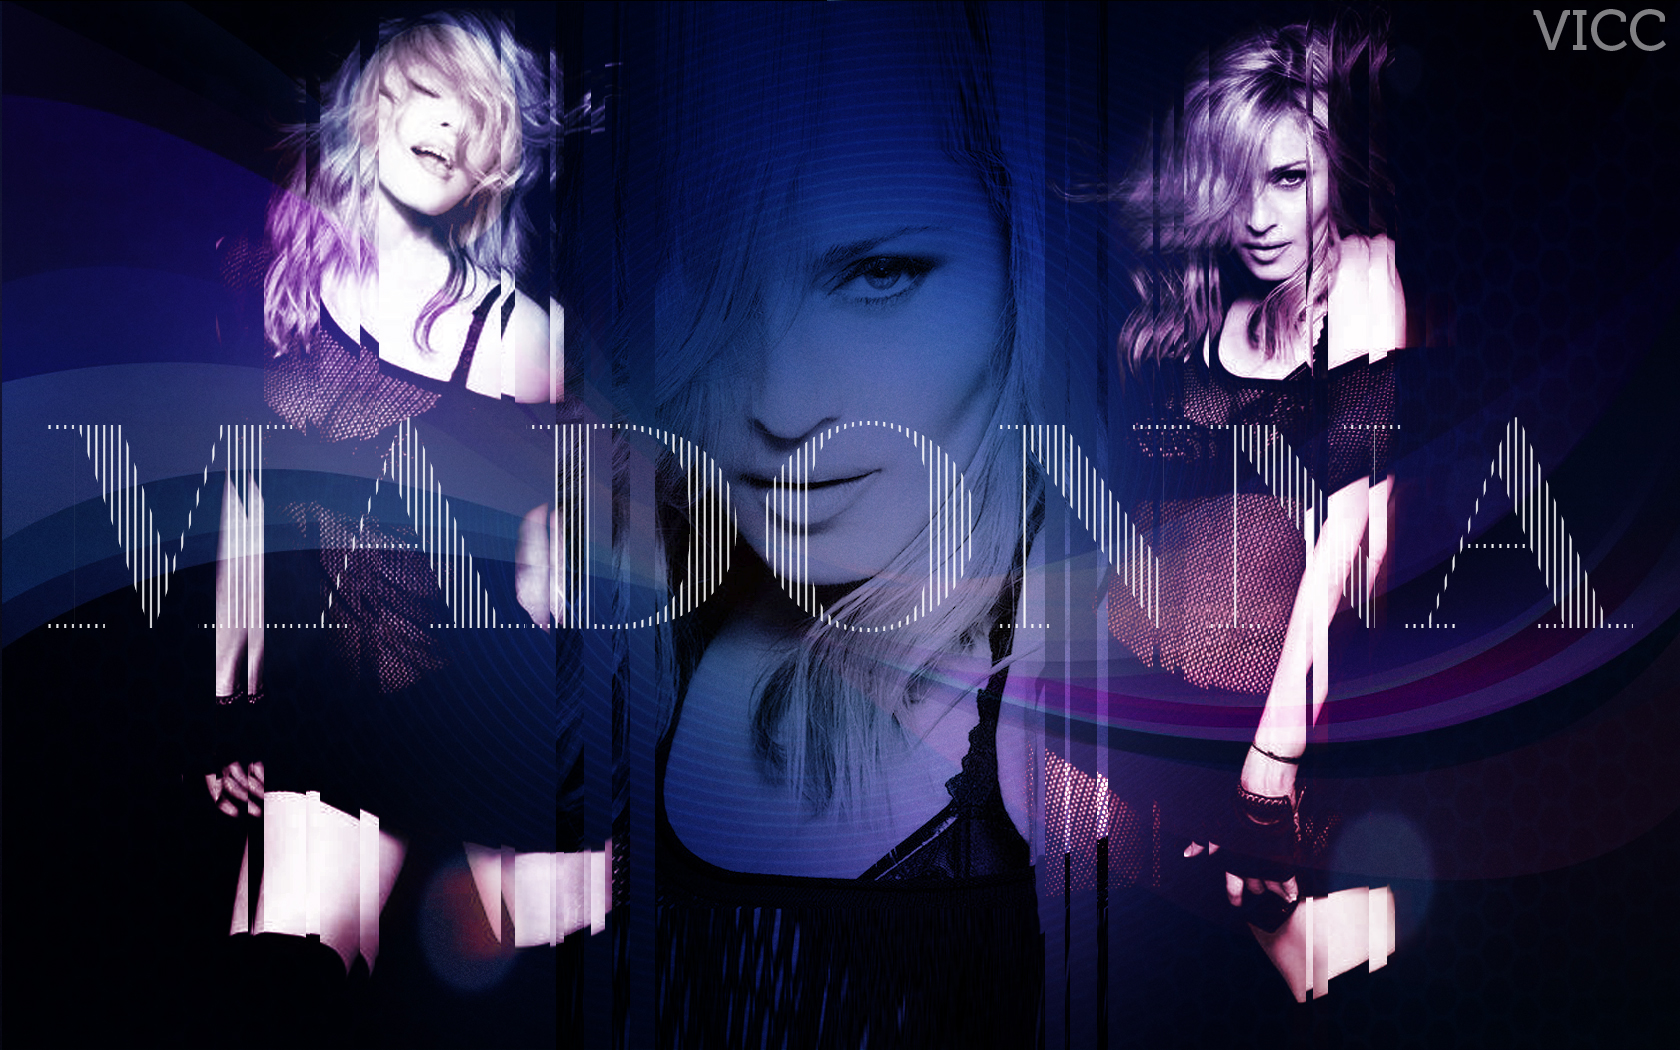 Madonna Wallpapers 1680x1050,